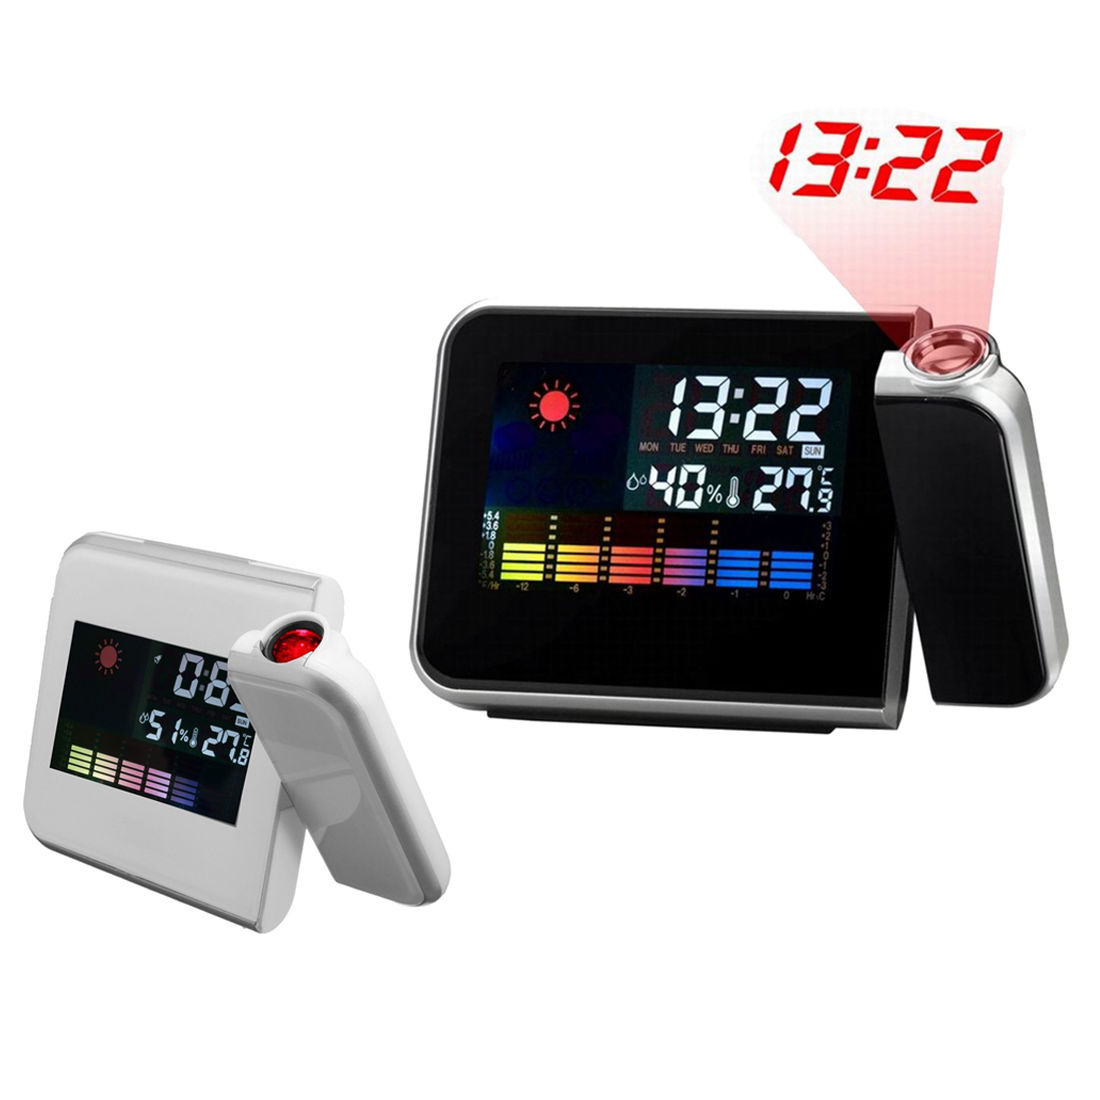 top 8 most popular led temp display brands and get free shipping